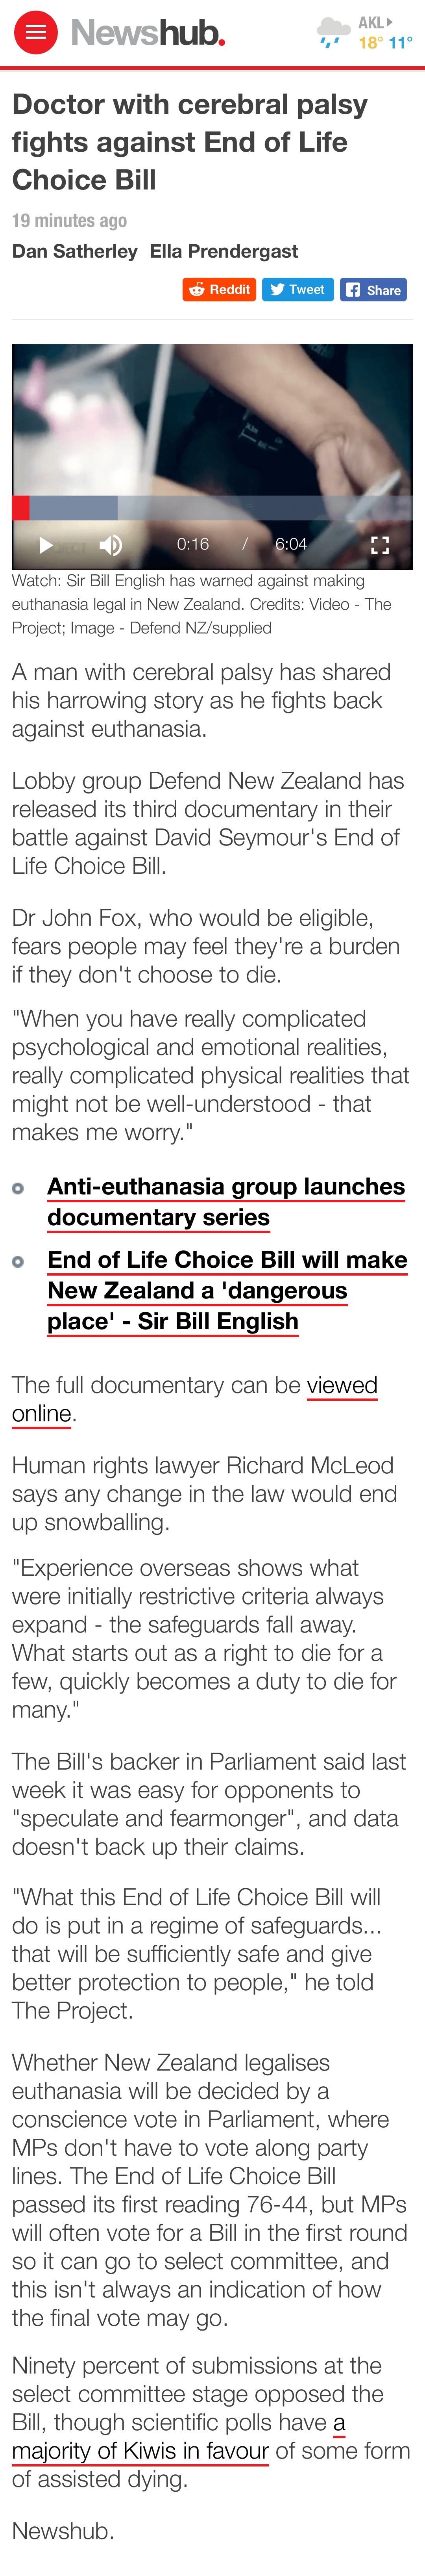 Screenshot of Newshub Website taken Sunday 7 April at 7:11am, of article since removed from Newshub website.